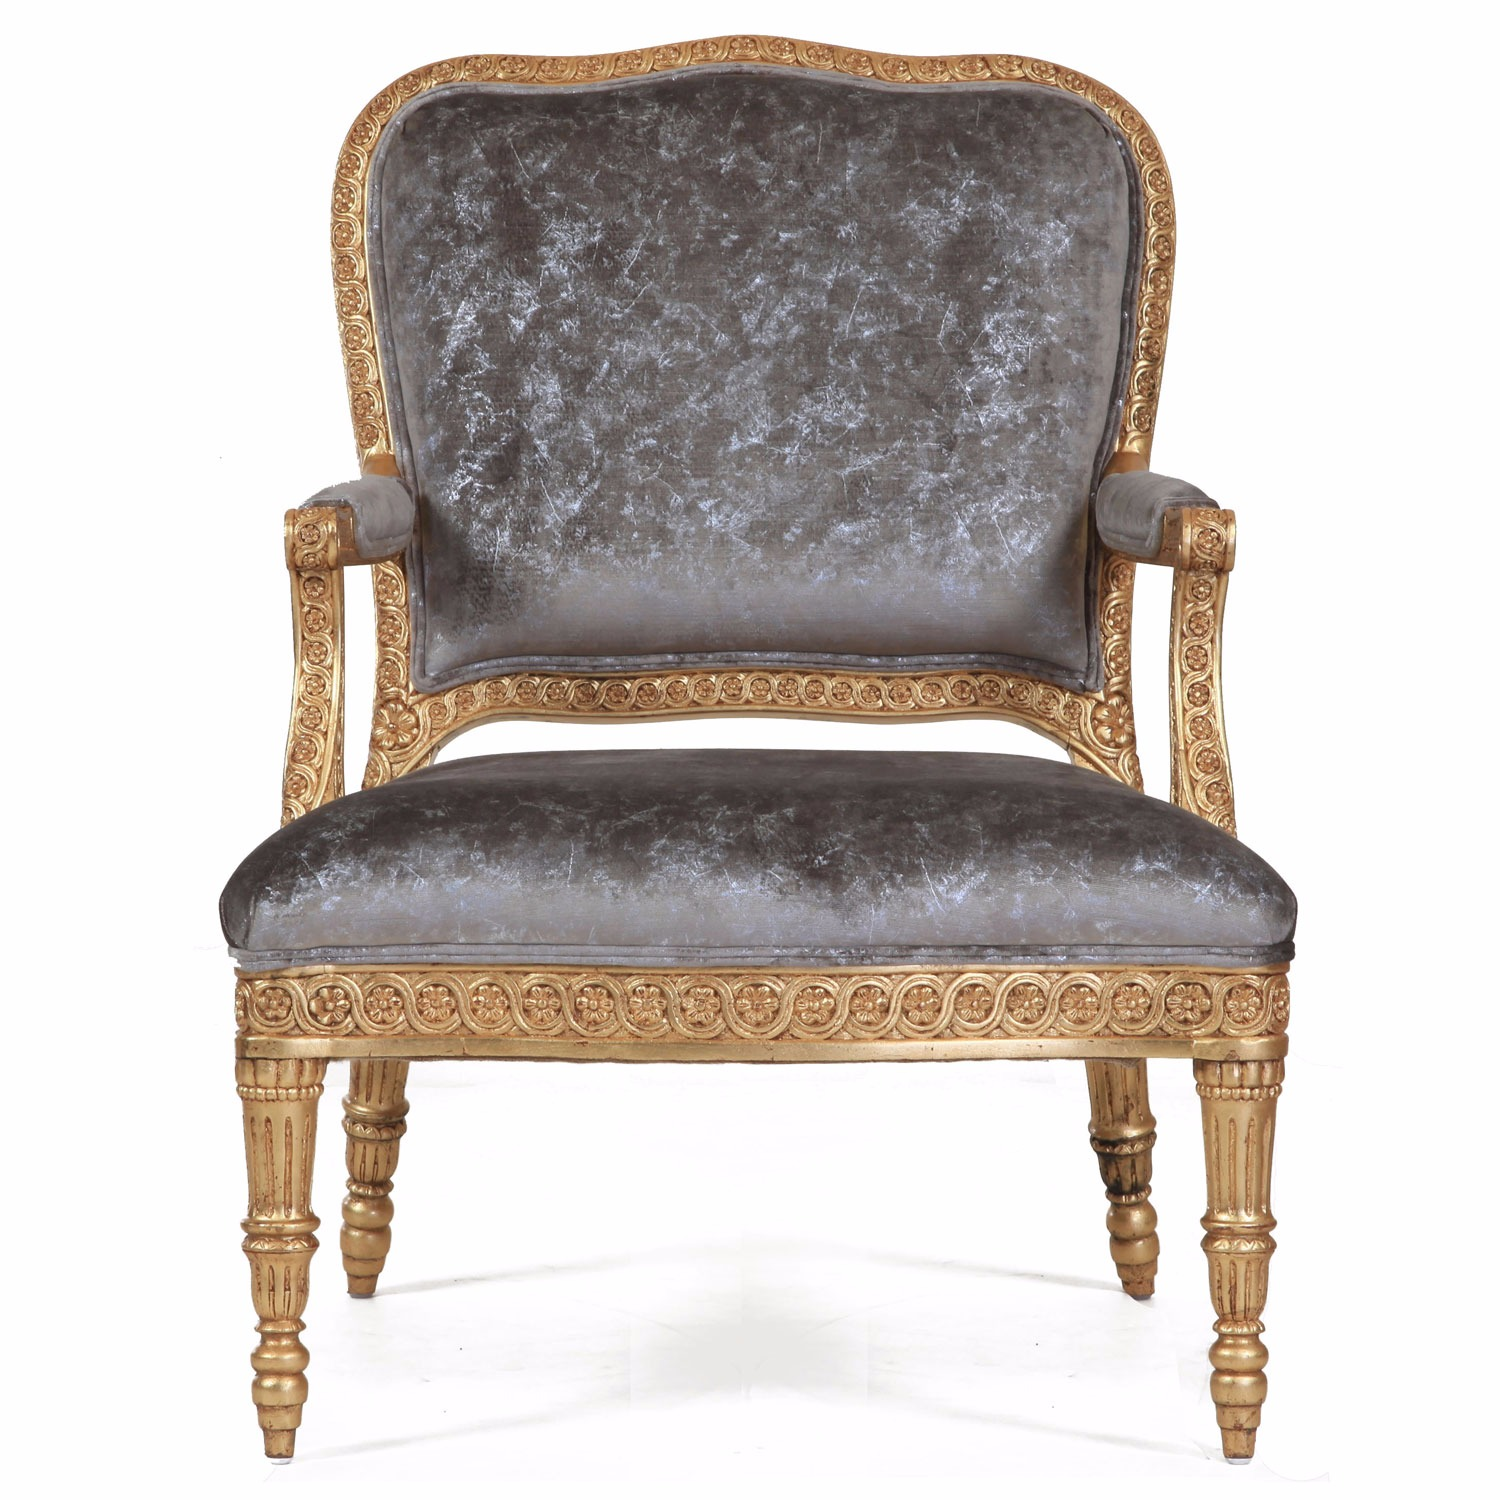 James giltwood chair in crushed sandshell velvet